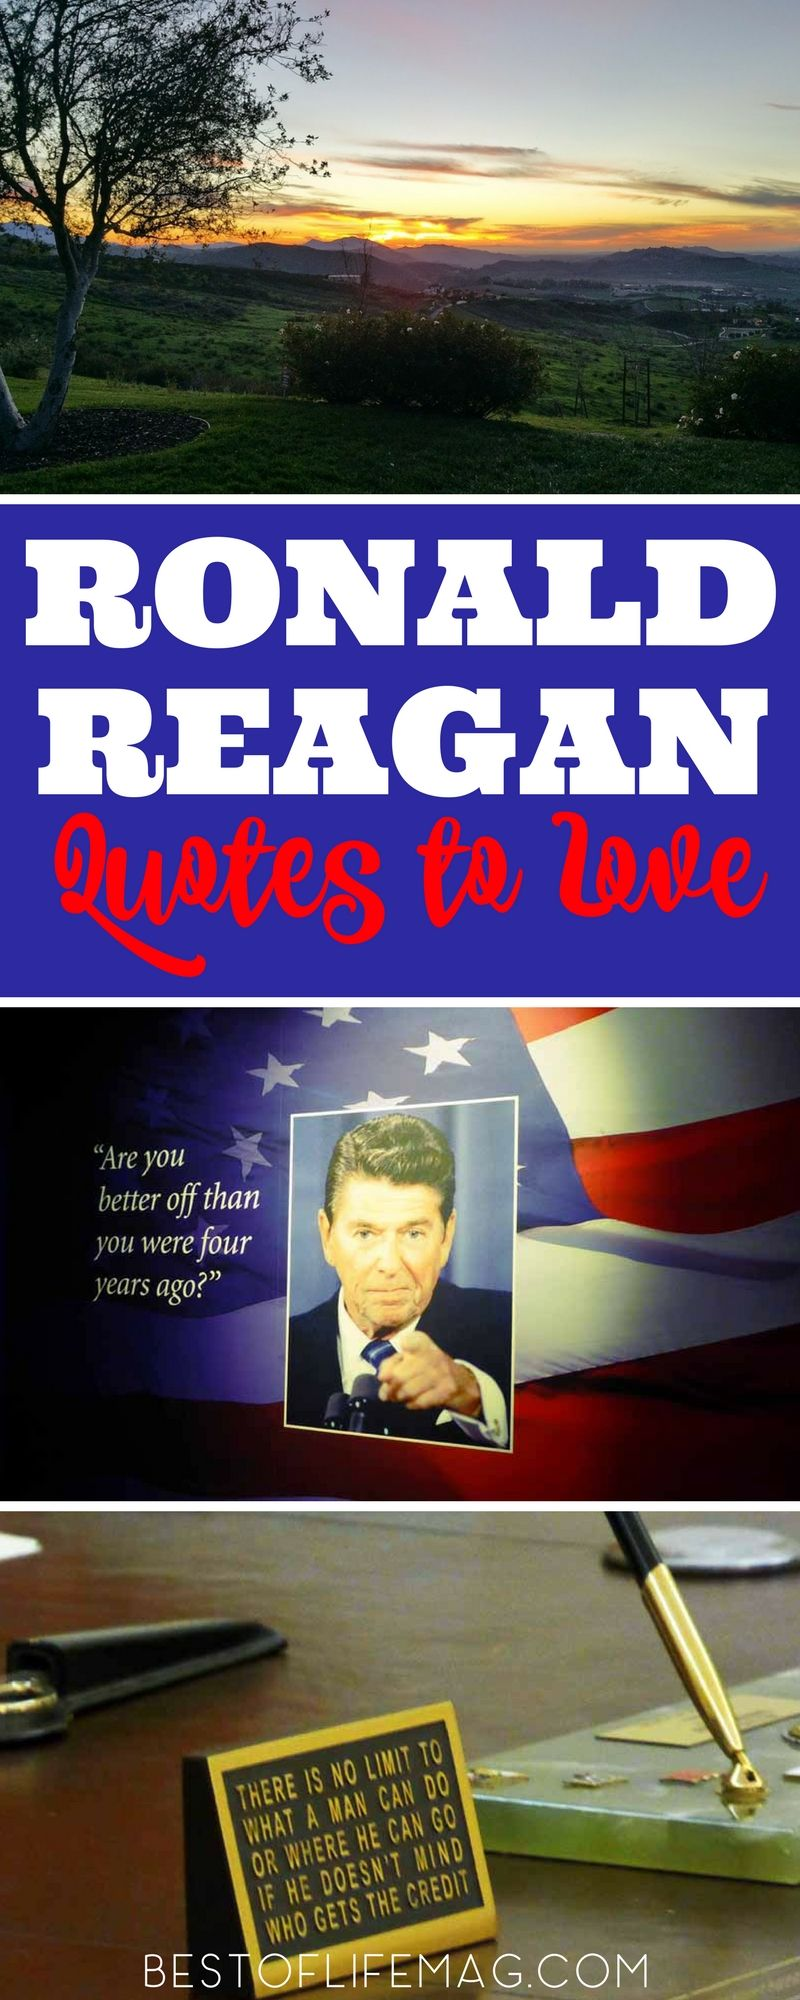 Ronald Reagan Quotes Ronald Reagan Quotes To Livefrom His Presidential Library .